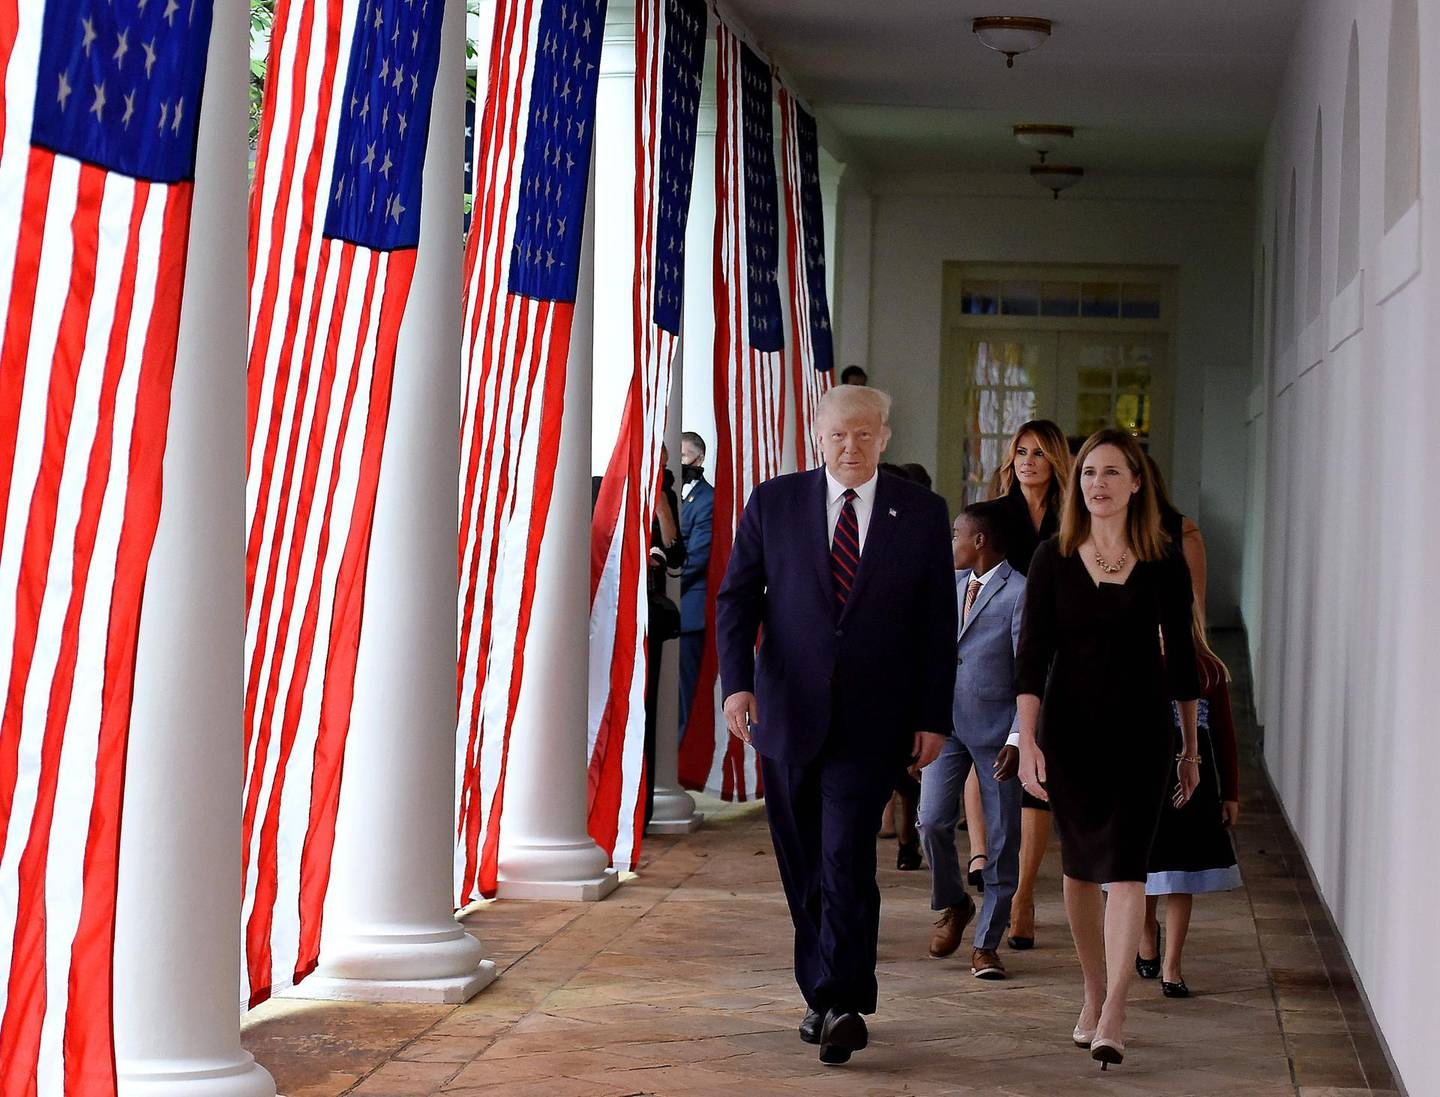 US President Donald Trump (L) and Judge Amy Coney Barrett (R), with US First Lady Melania Trump, arrive at the Rose Garden of the White House in Washington, DC, on September 26, 2020. Judge Amy Coney Barrett, who was nominated Saturday to the US Supreme Court, is a darling of conservatives for her religious views but detractors warn her confirmation would shift the nation's top court firmly to the right. / AFP / Olivier DOULIERY